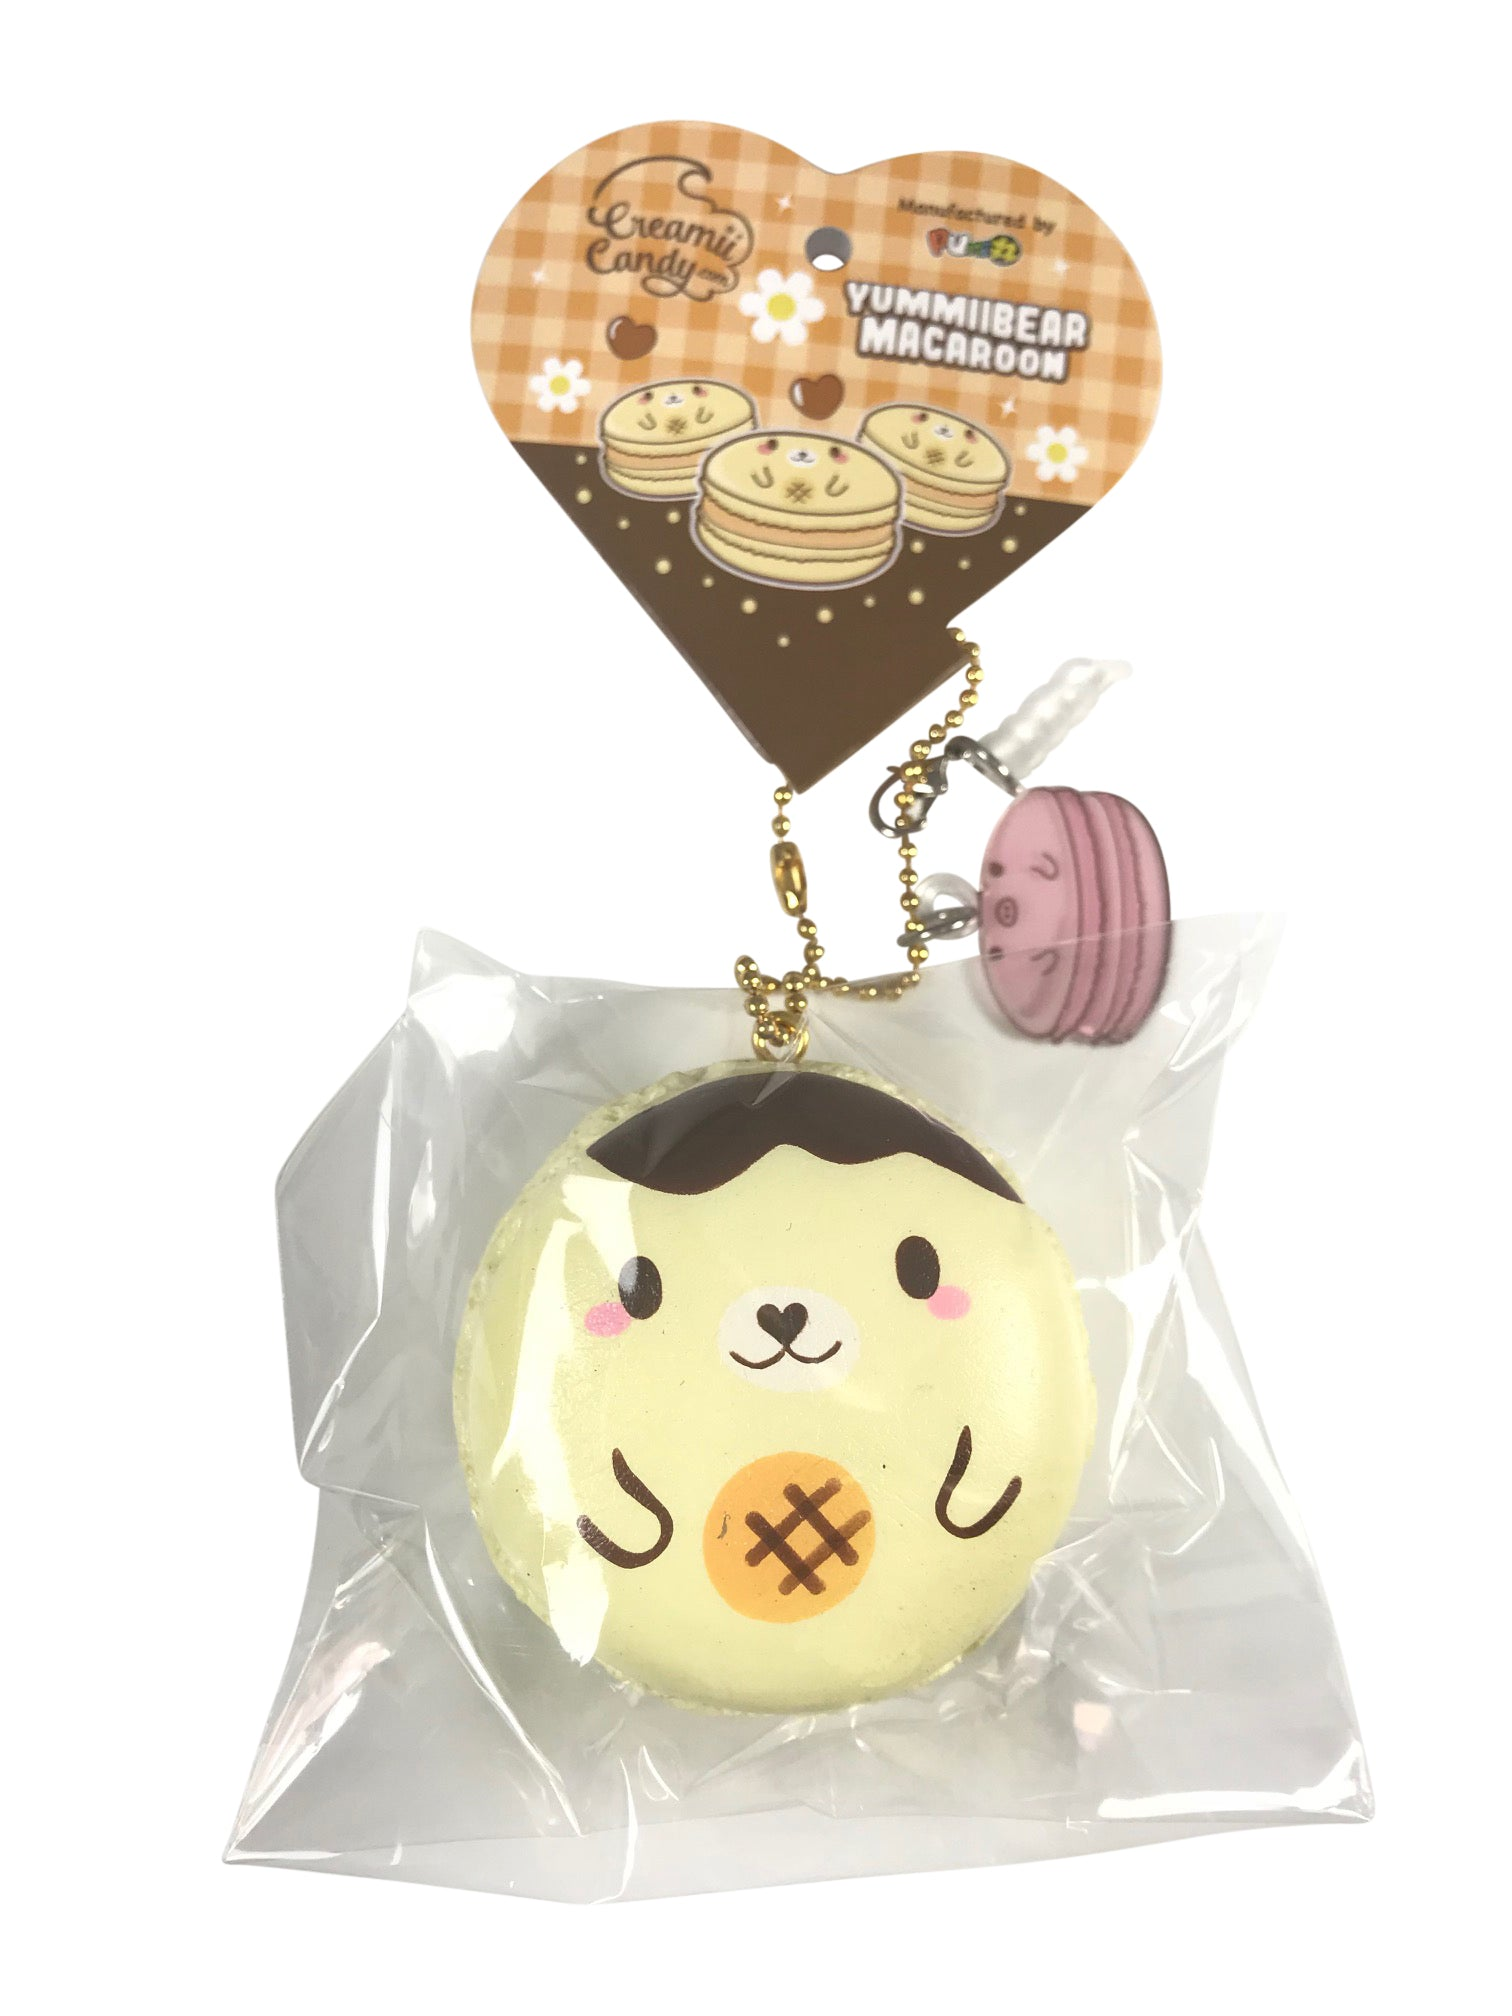 Mini, SCENTED, Licensed, Yummiibear Macaron Squishy!